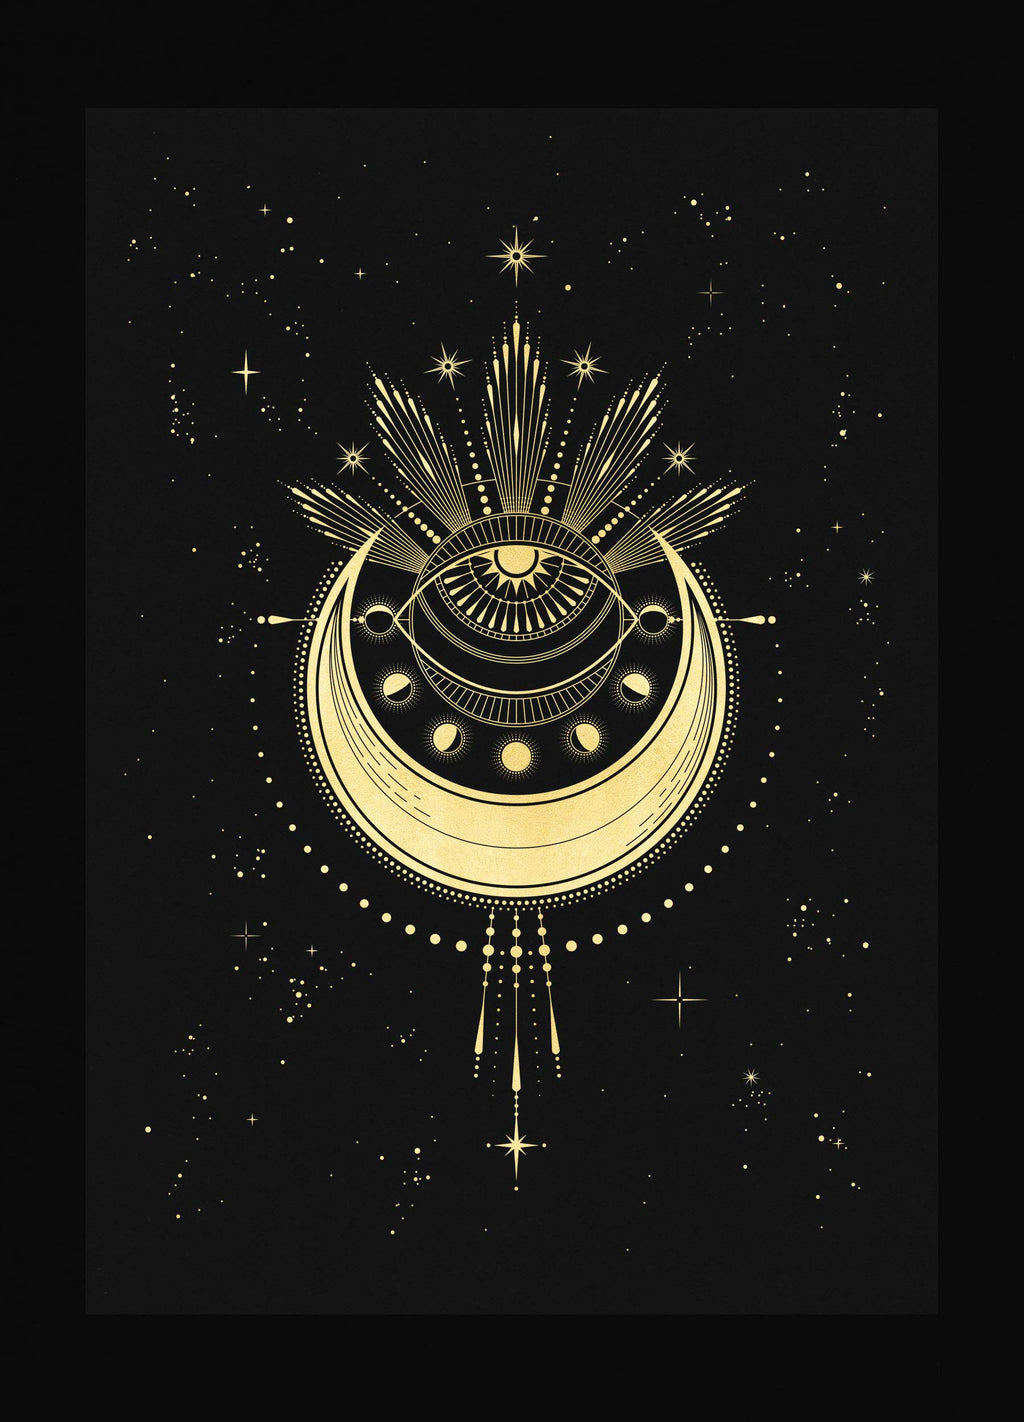 The Minds Eye art print in gold foil and black paper with stars and moon by Cocorrina